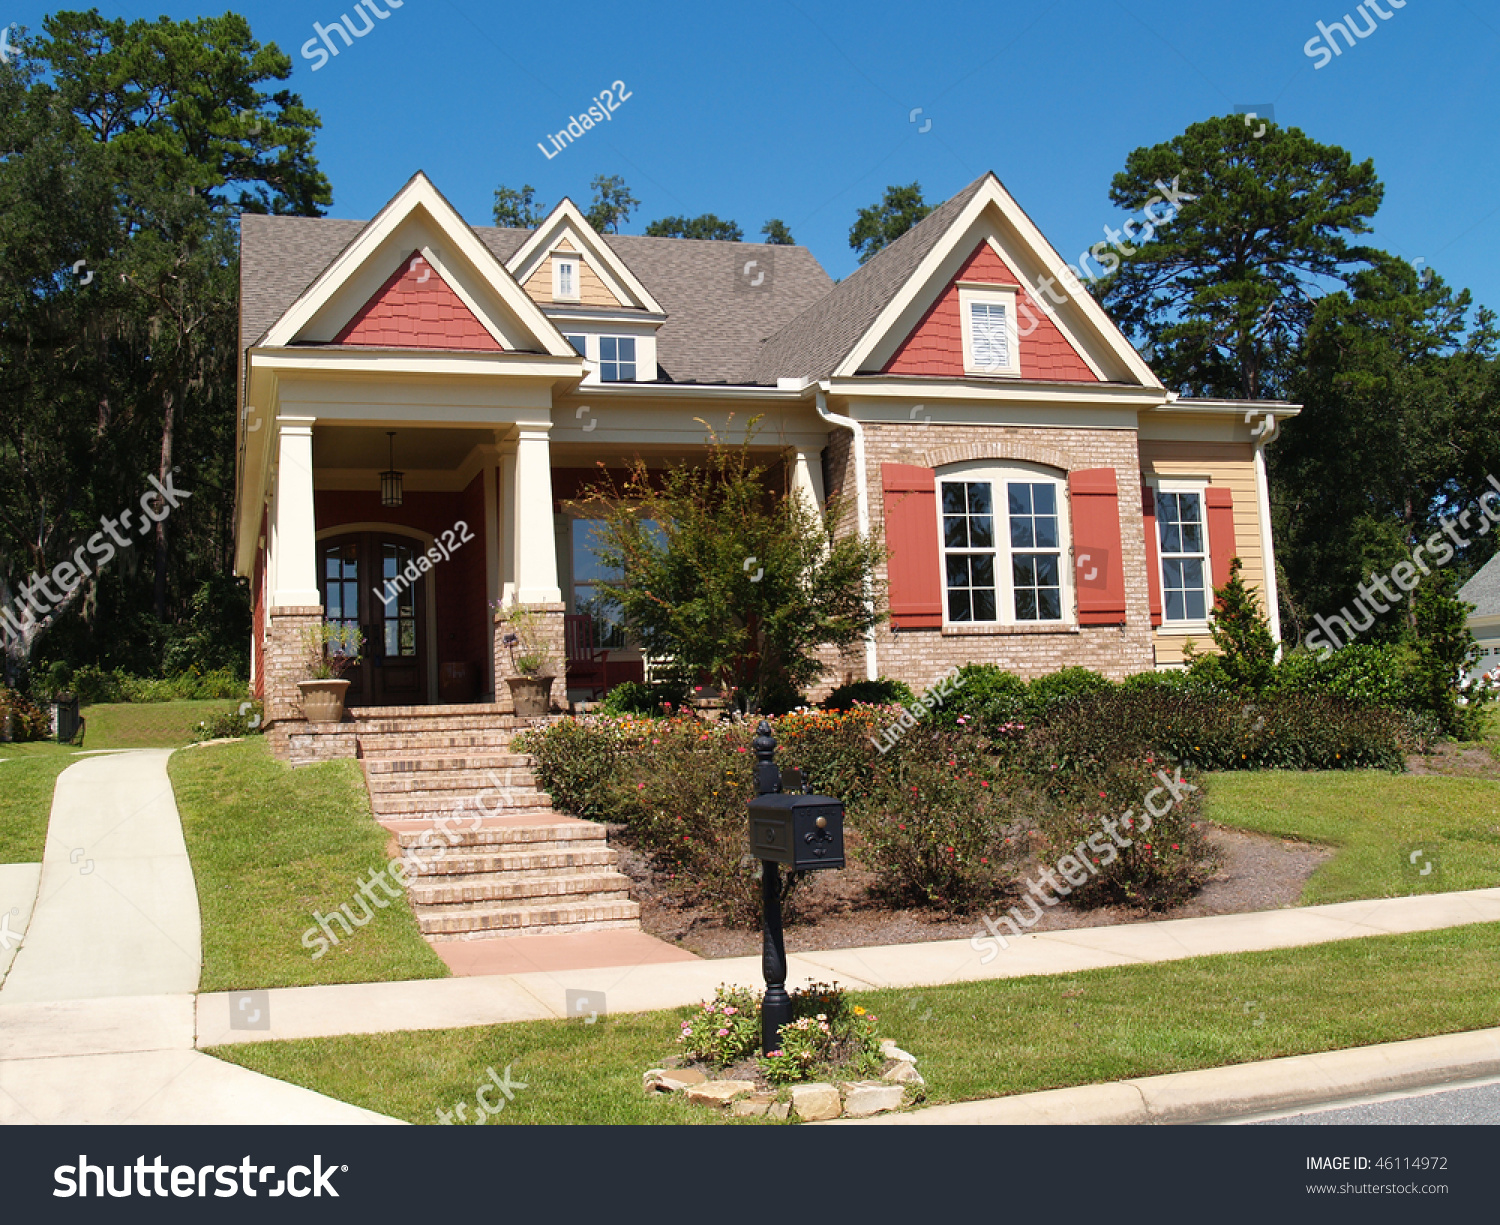 Beige Brick Home Having Peach White Stock Photo 46114972